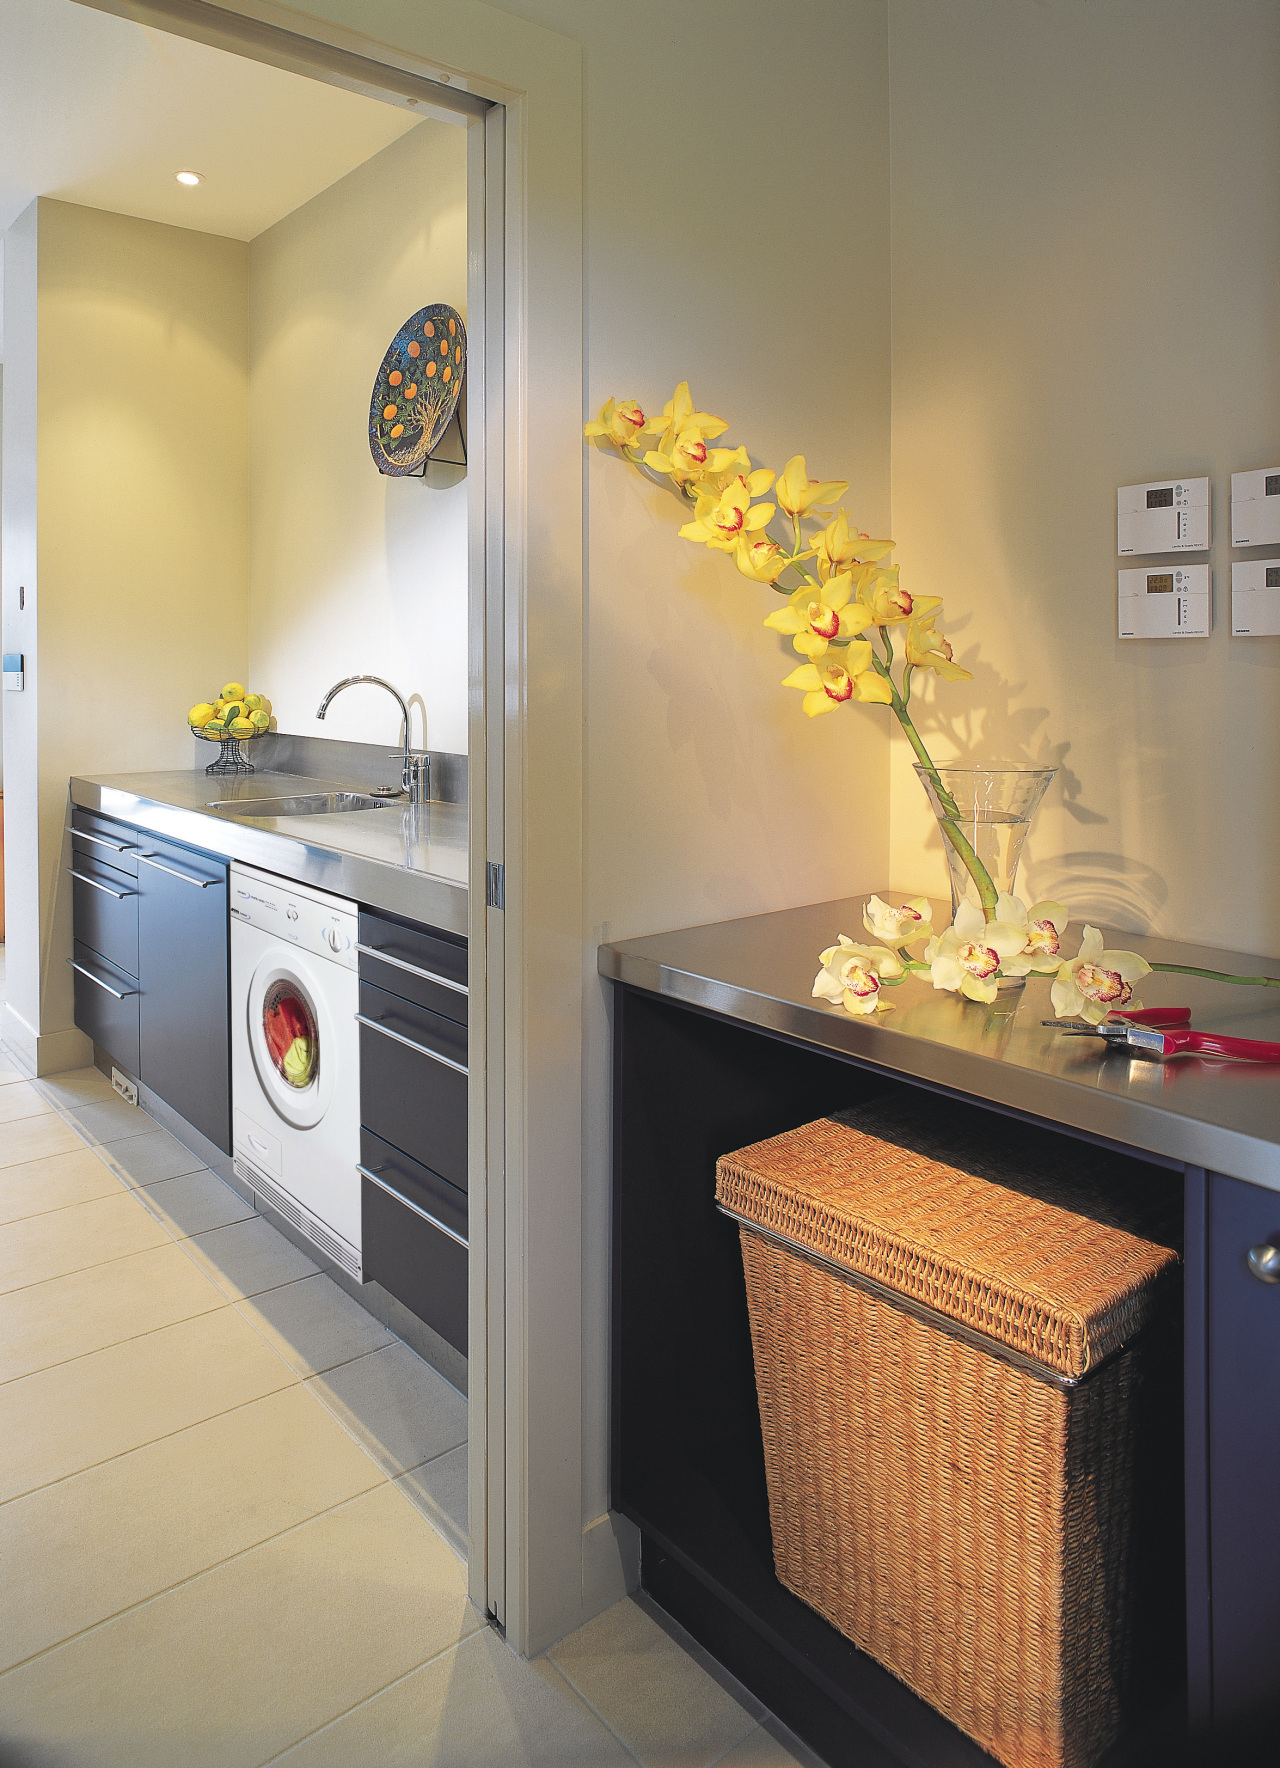 A laundry featuring a Smeg dryer. The laundry countertop, home appliance, interior design, kitchen, major appliance, room, gray, orange